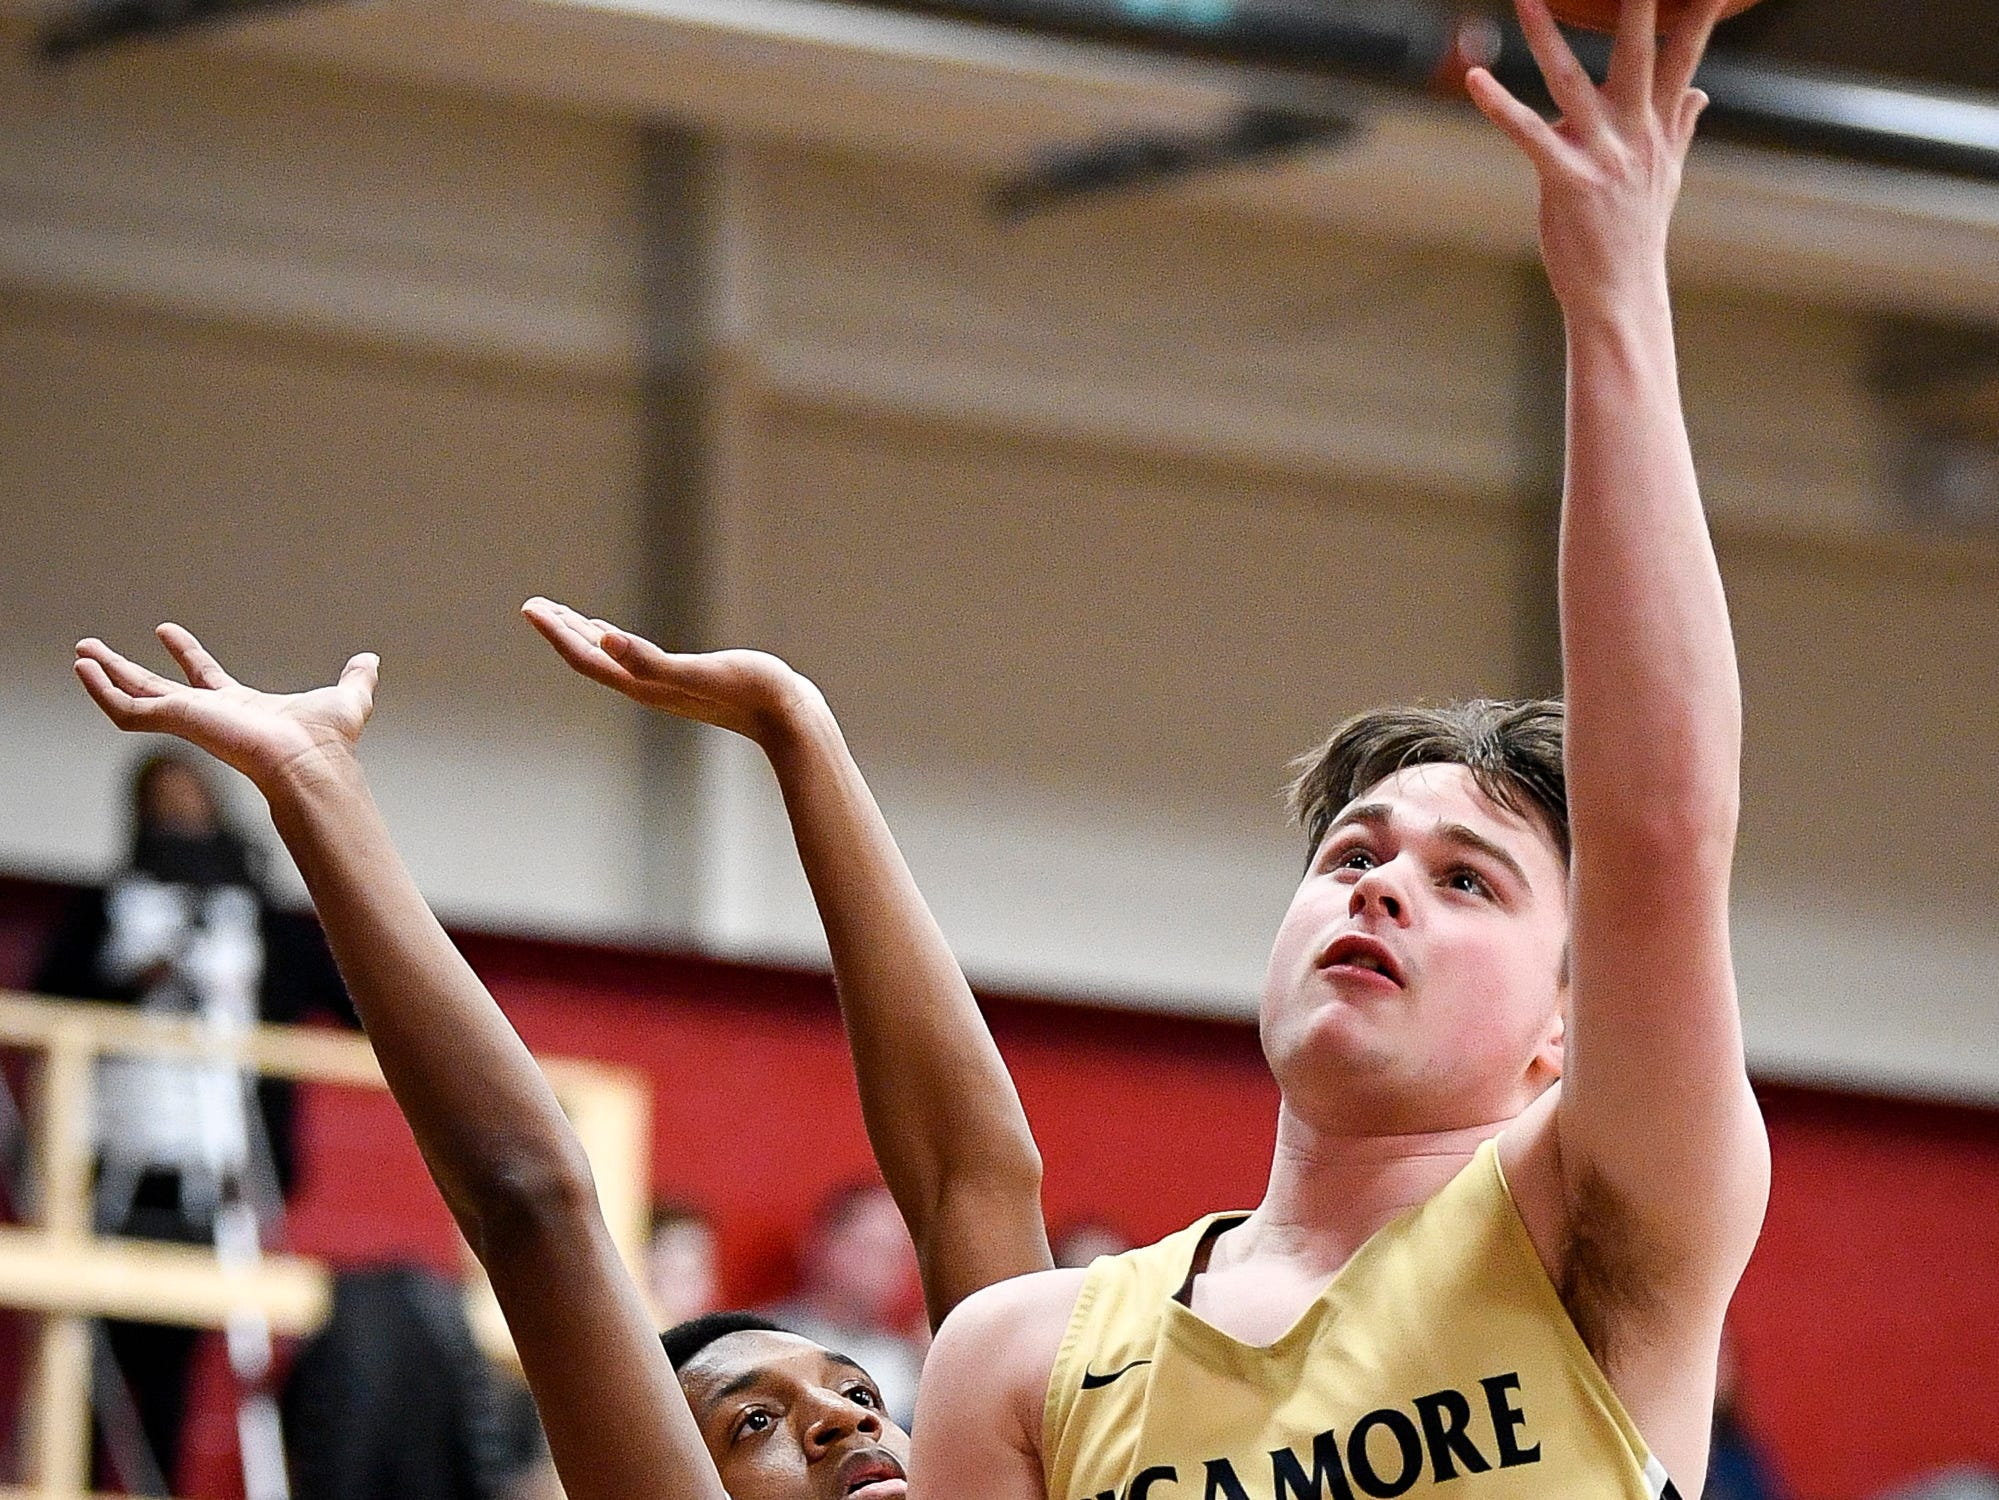 Sycamore's Dalton Dutton (31) shoots past East Nashville's Caleb Grimes (3) during the first half at East Nashville Magnet High School in Nashville, Tenn., Friday, Feb. 1, 2019.